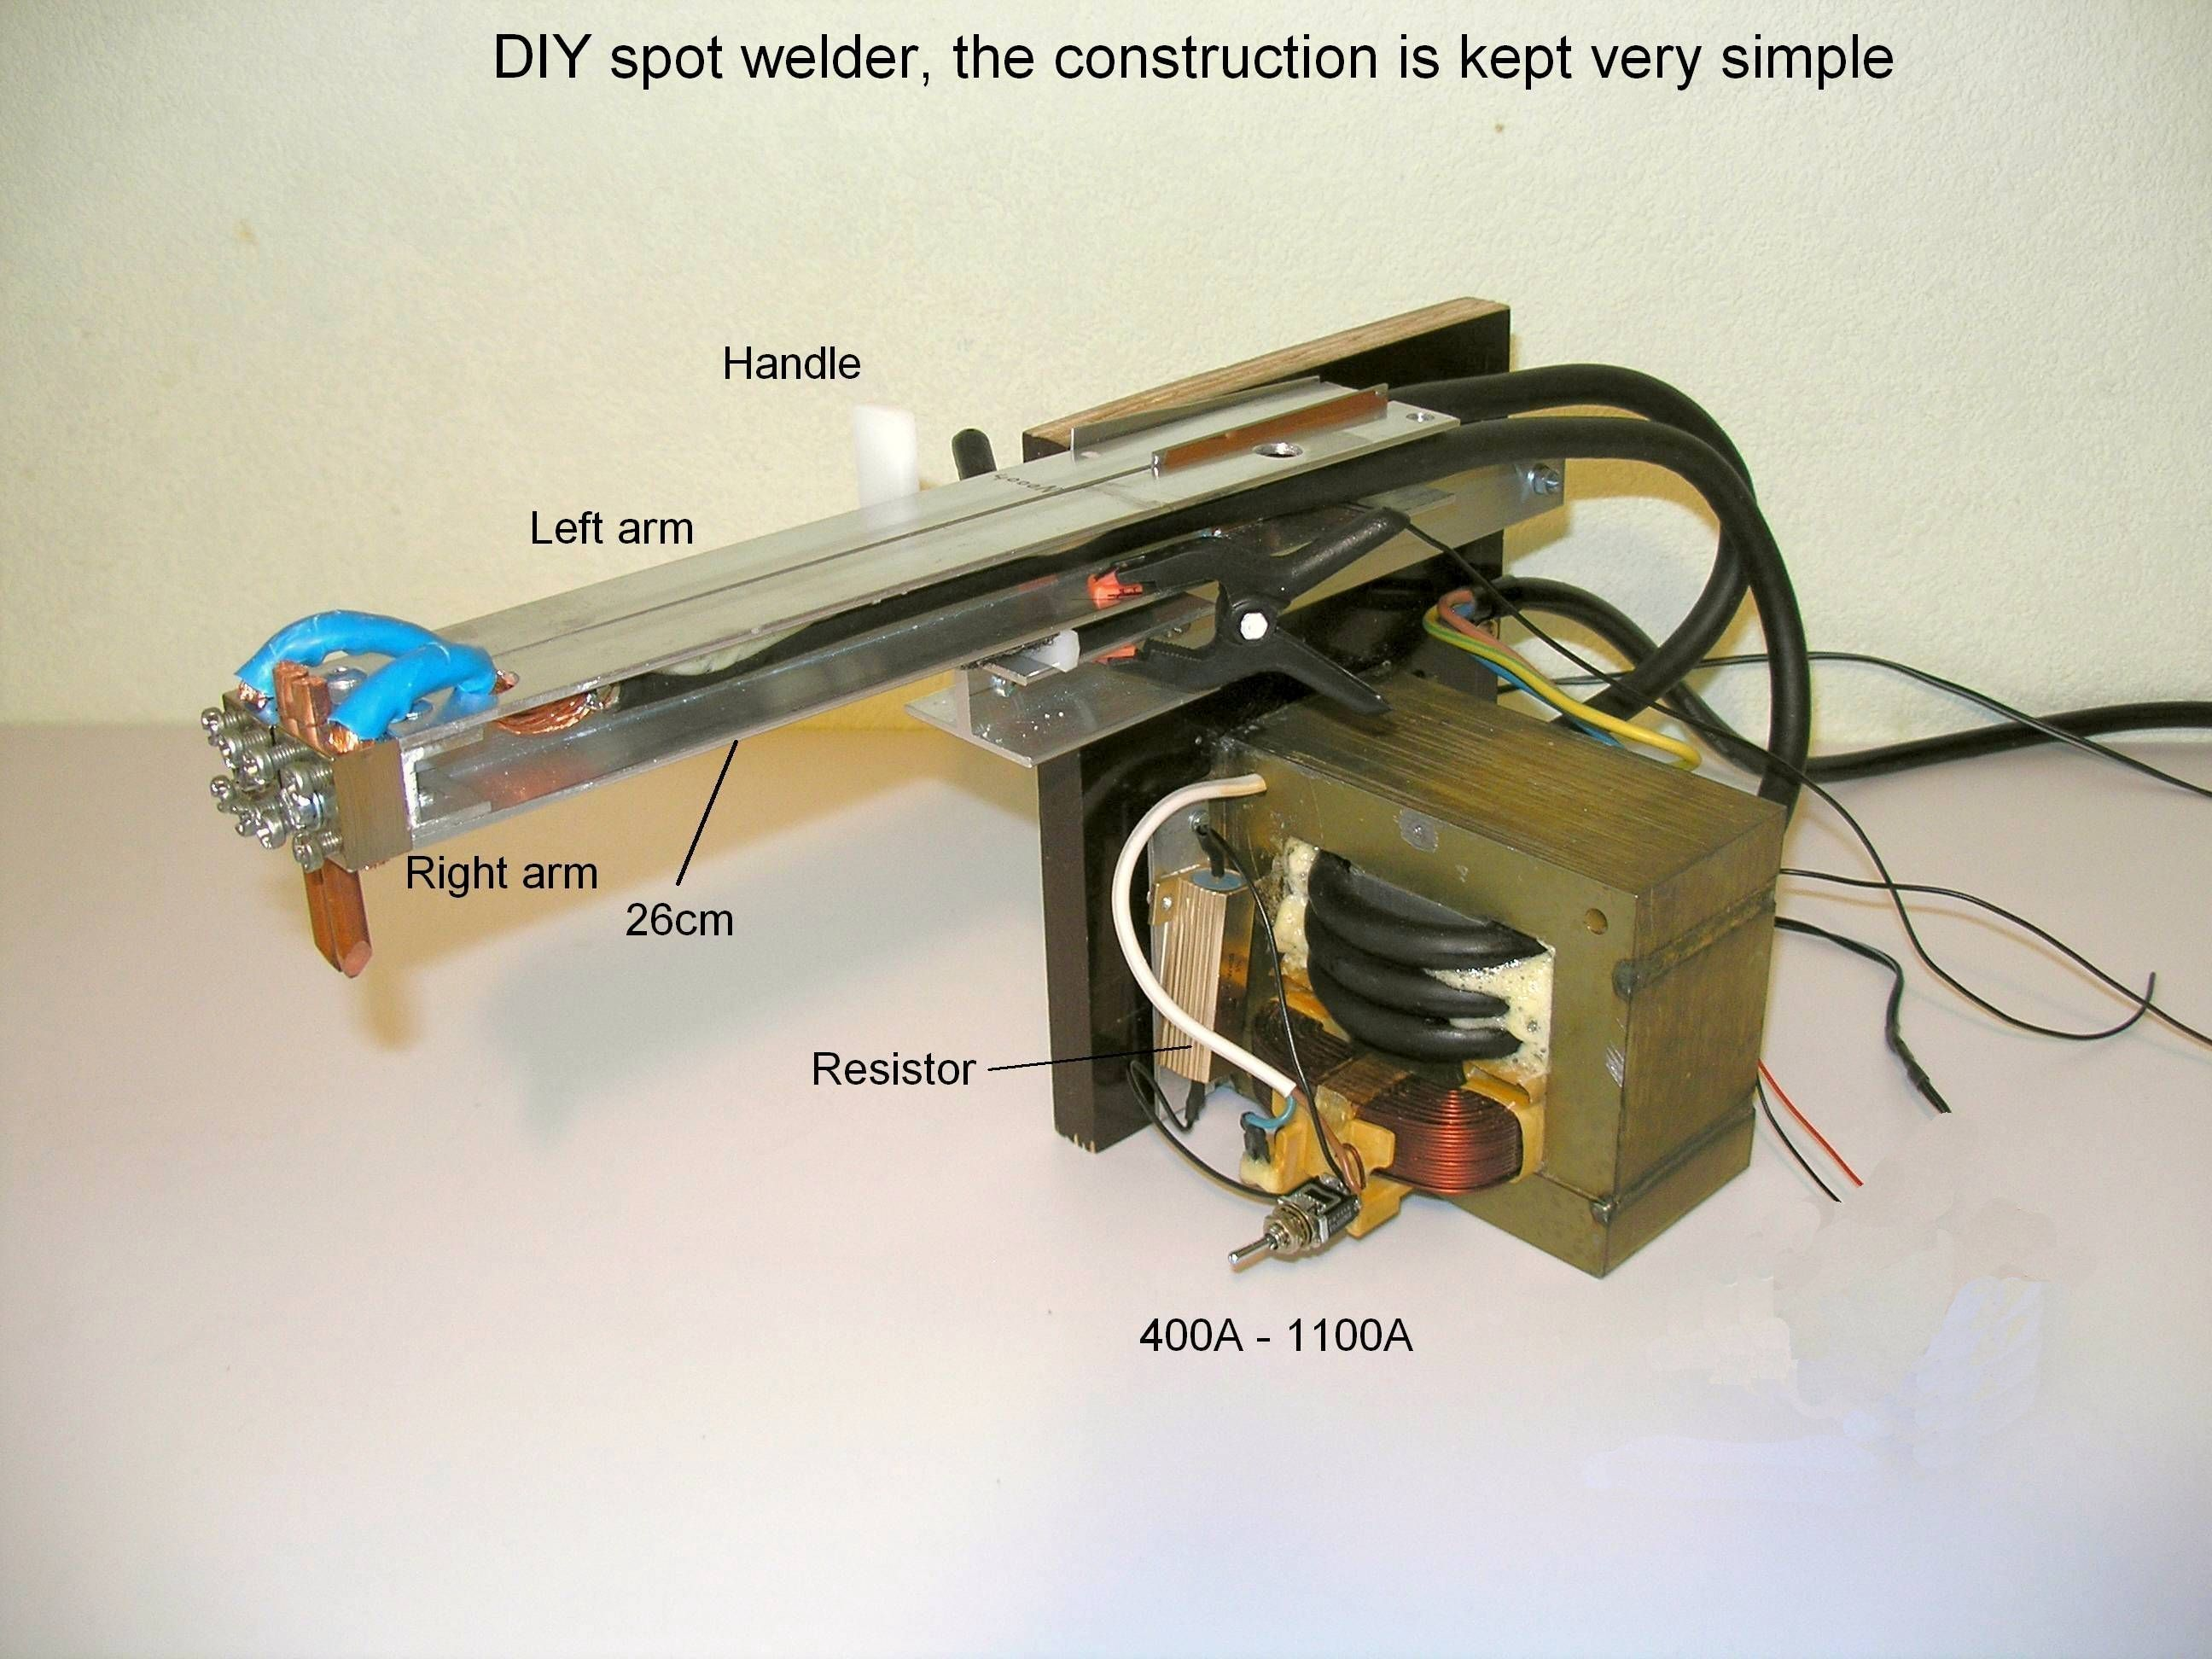 Diy Spot Welder And Wire With High Resistance Has Problems Here Is A Diagram Let Battery Tab Fine